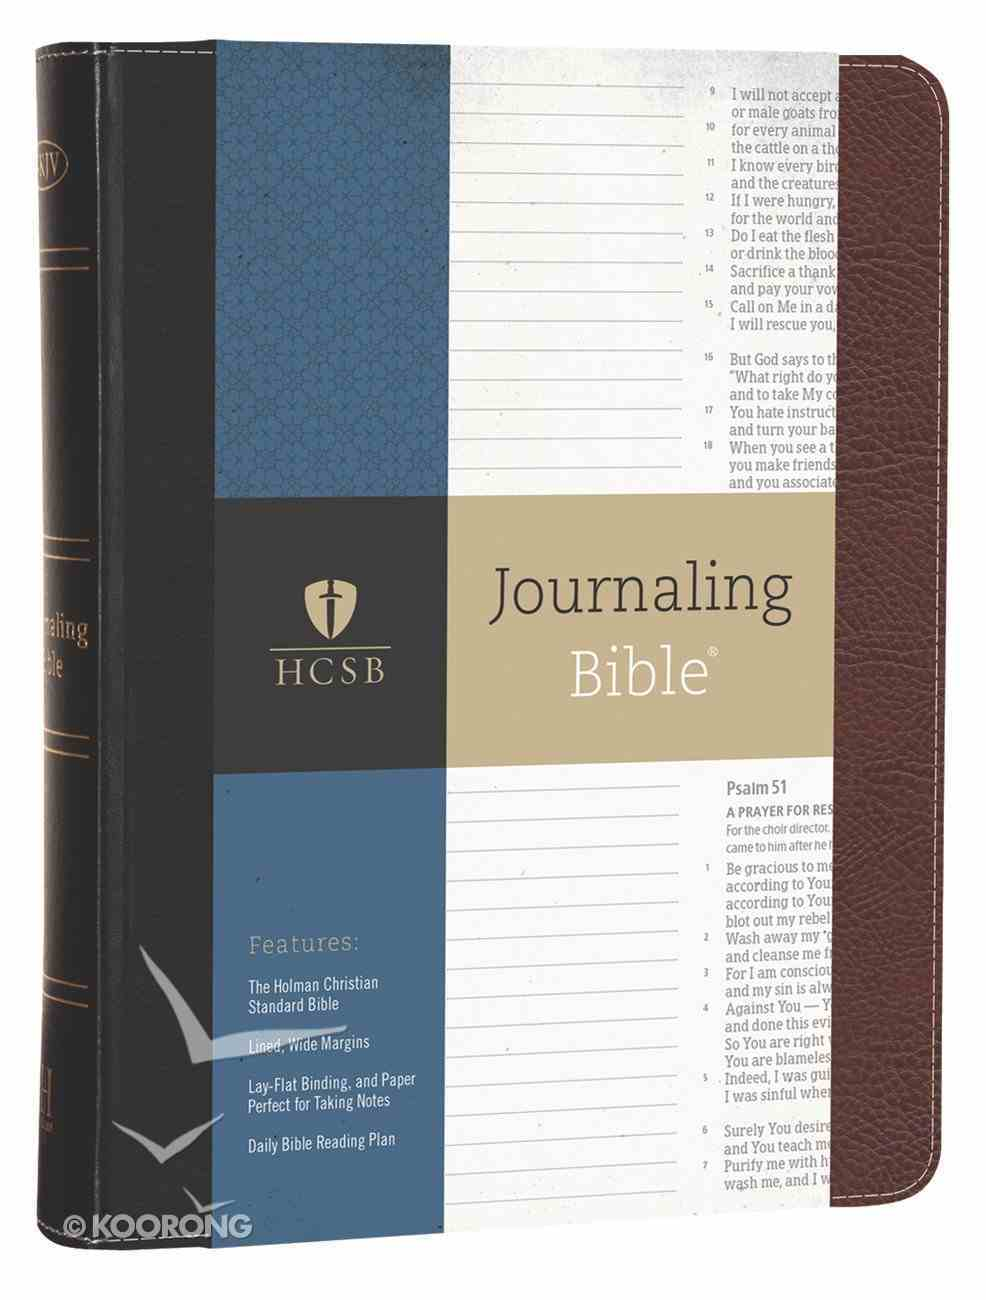 HCSB Journaling Bible Bonded Leather